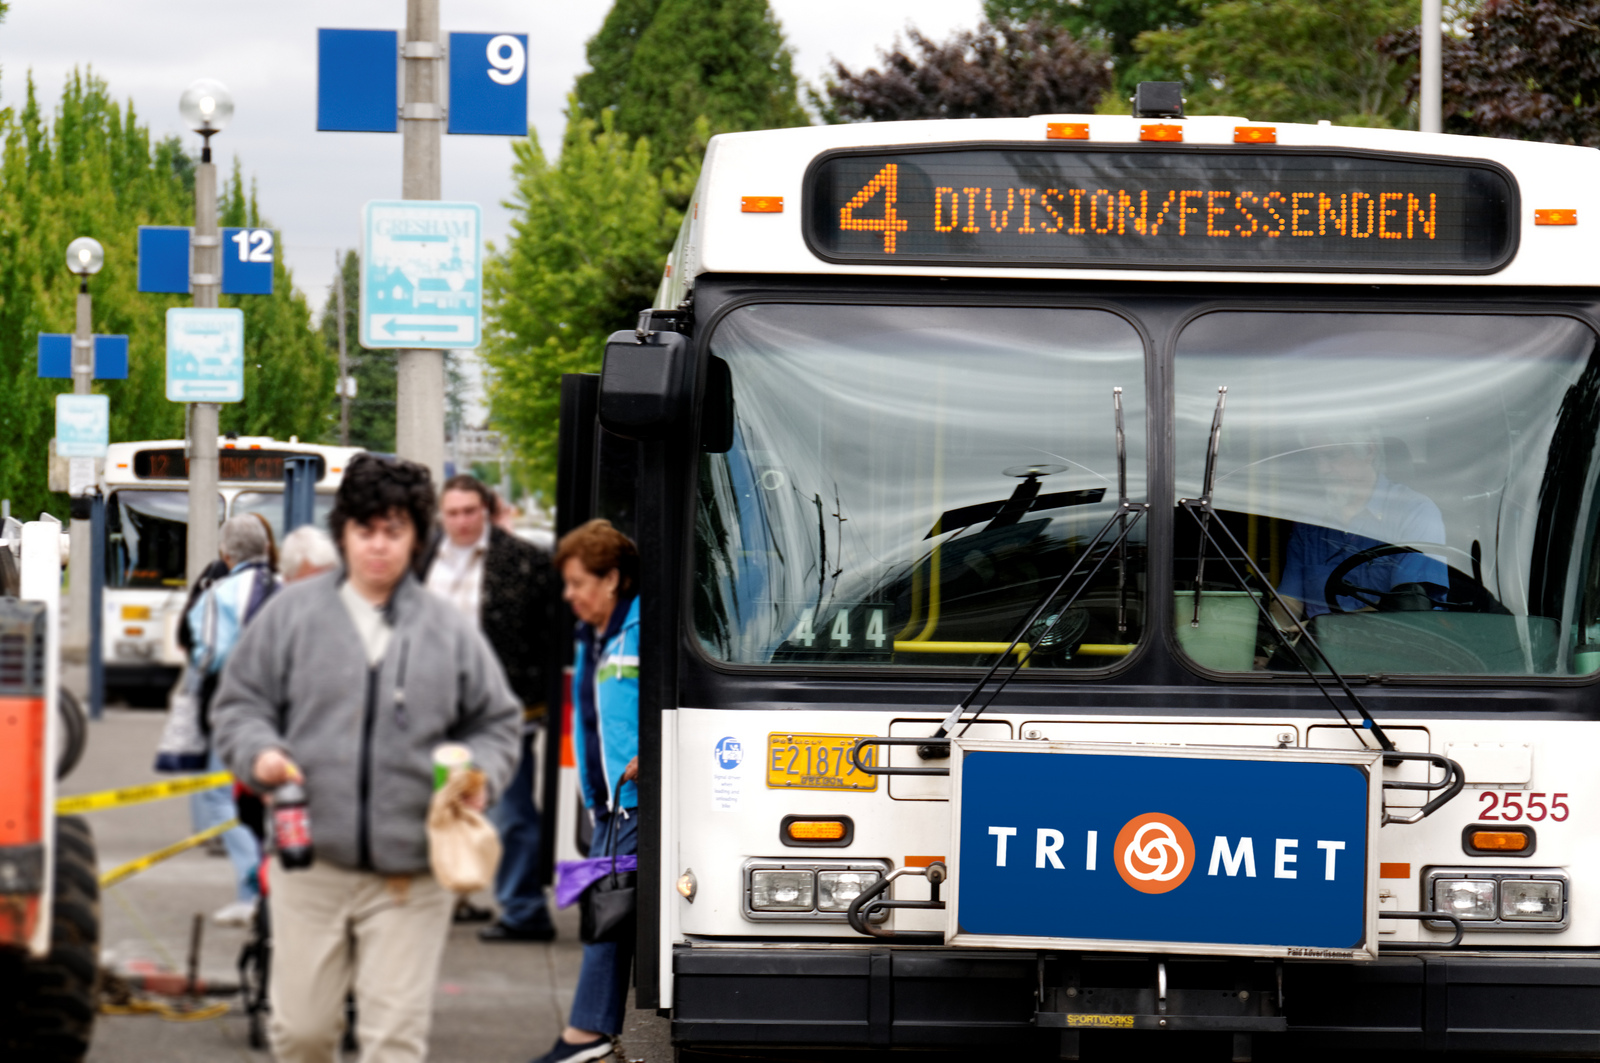 trimet's fall schedule brings $2.1 million in service improvements